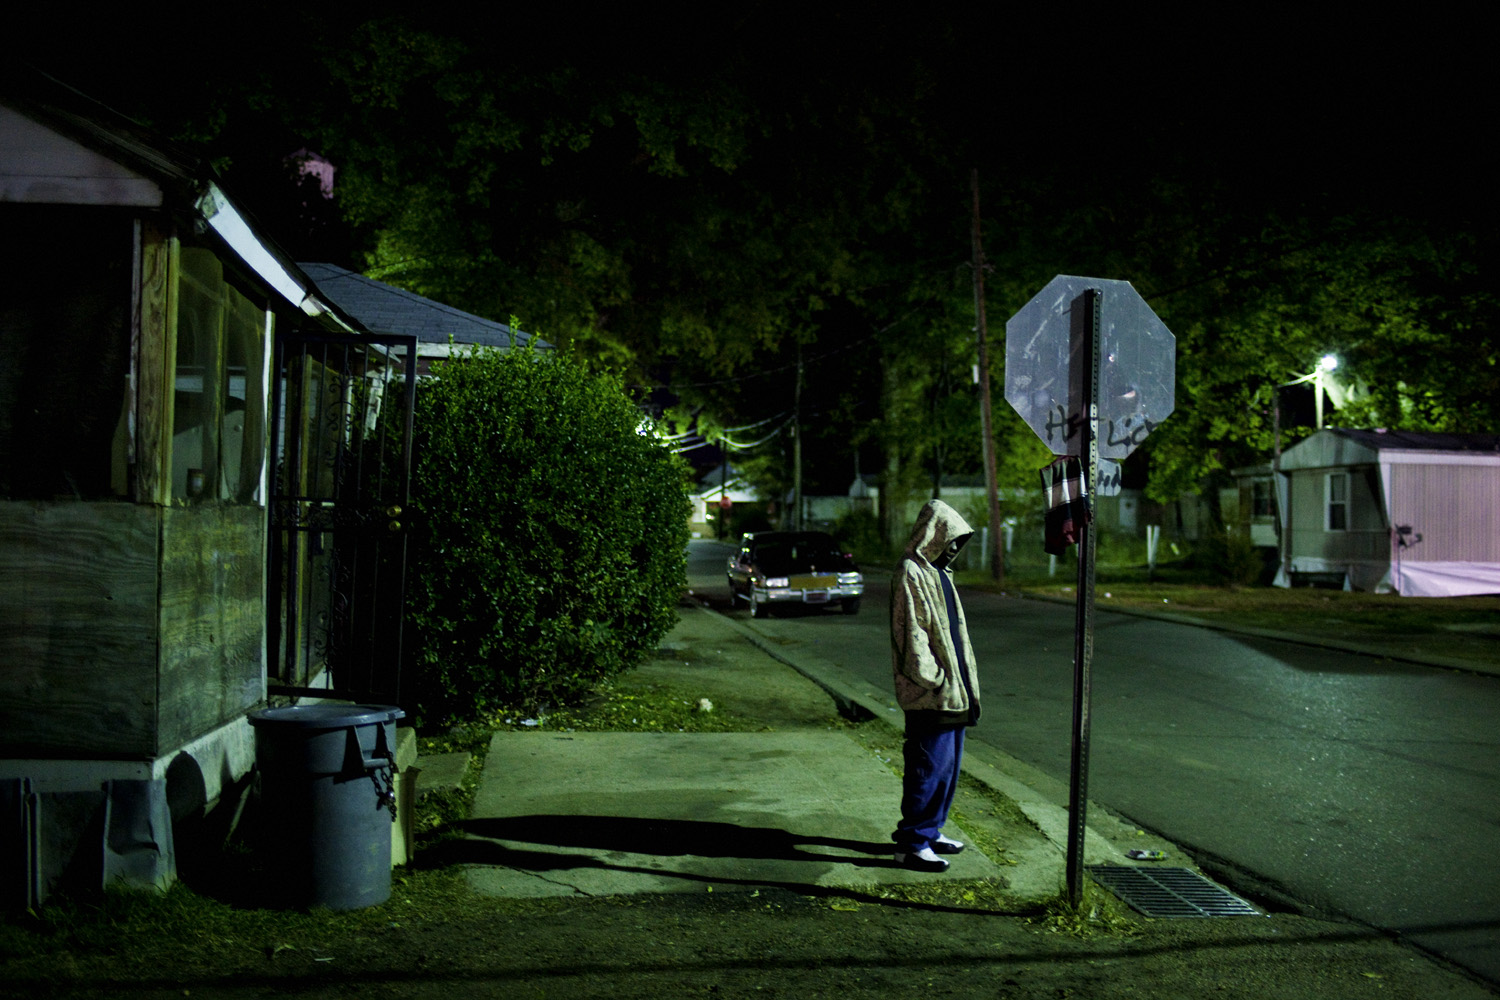 A young man lit only by the dim glow of street lights stands on the corner of Young and Pelican late at night in the Baptist Town neighborhood of Greenwood, Mississippi. Nov. 4, 2010.